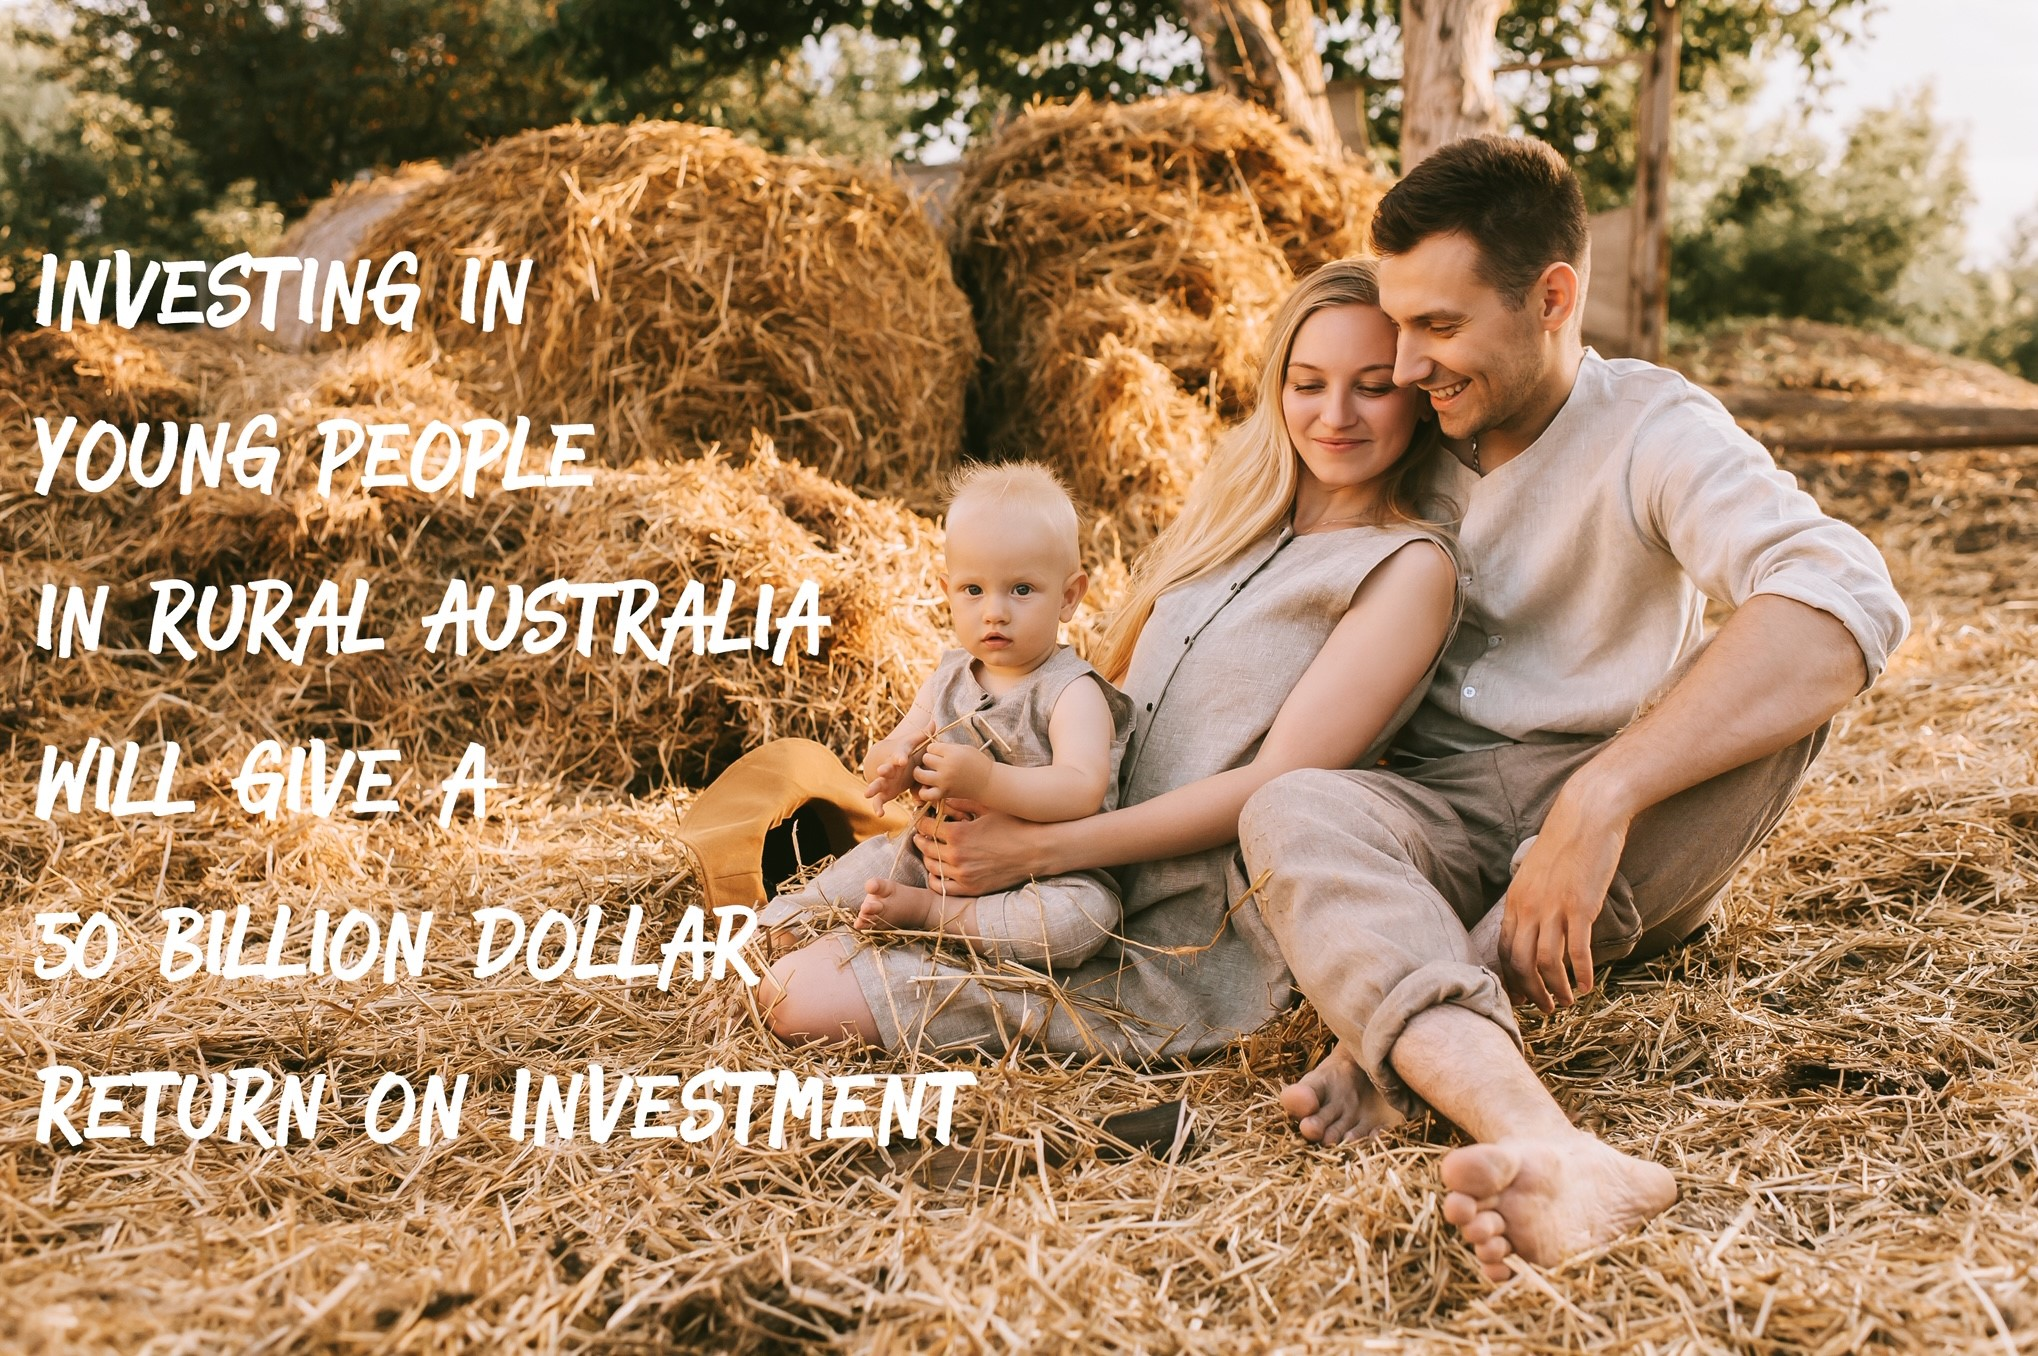 Investing in Young People